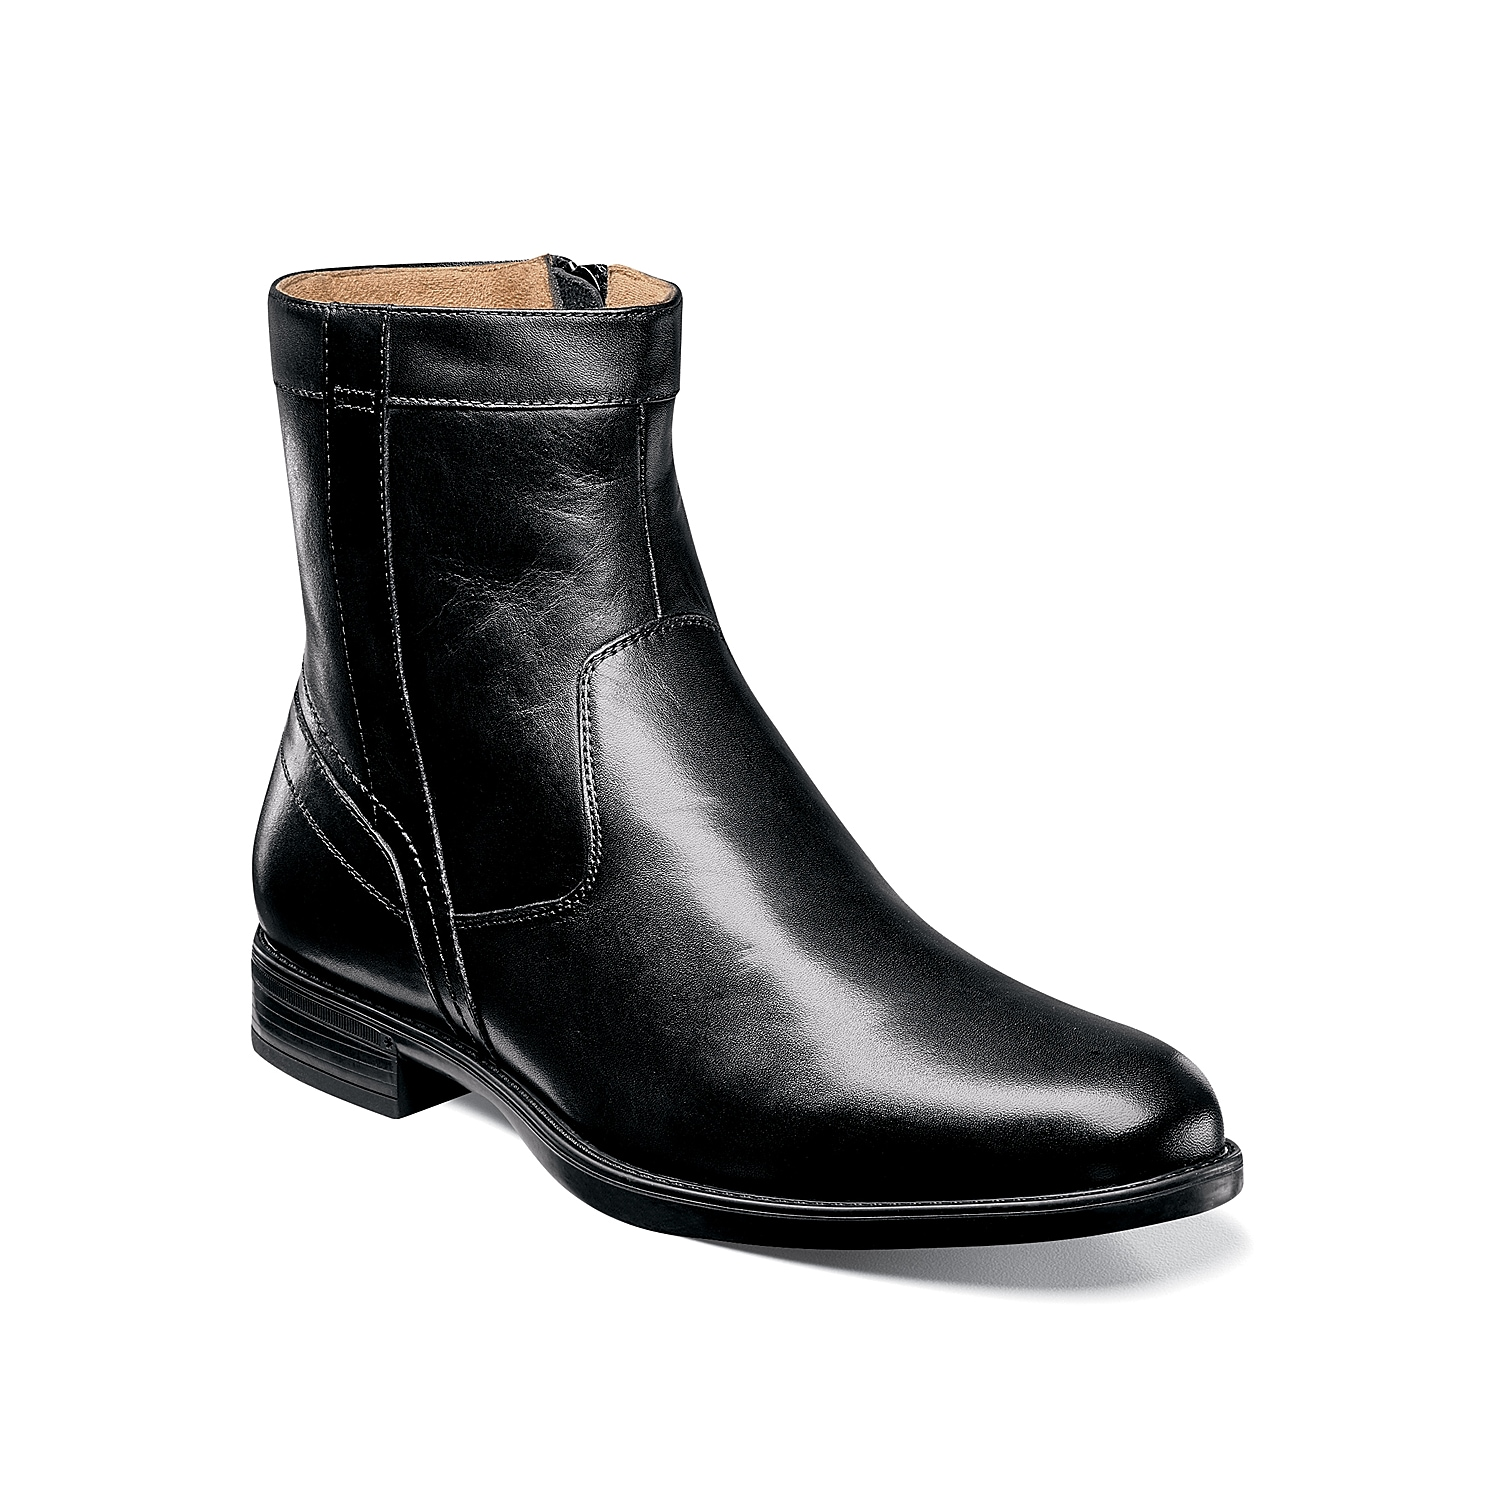 A sturdy boot built with unique technology for superior comfort and support, the Florsheim Midtown Plain Toe Zip Boot is a sharp alternative to your classic dress footwear. This handsome shoe is constructed with smooth leather and has an easy fit.